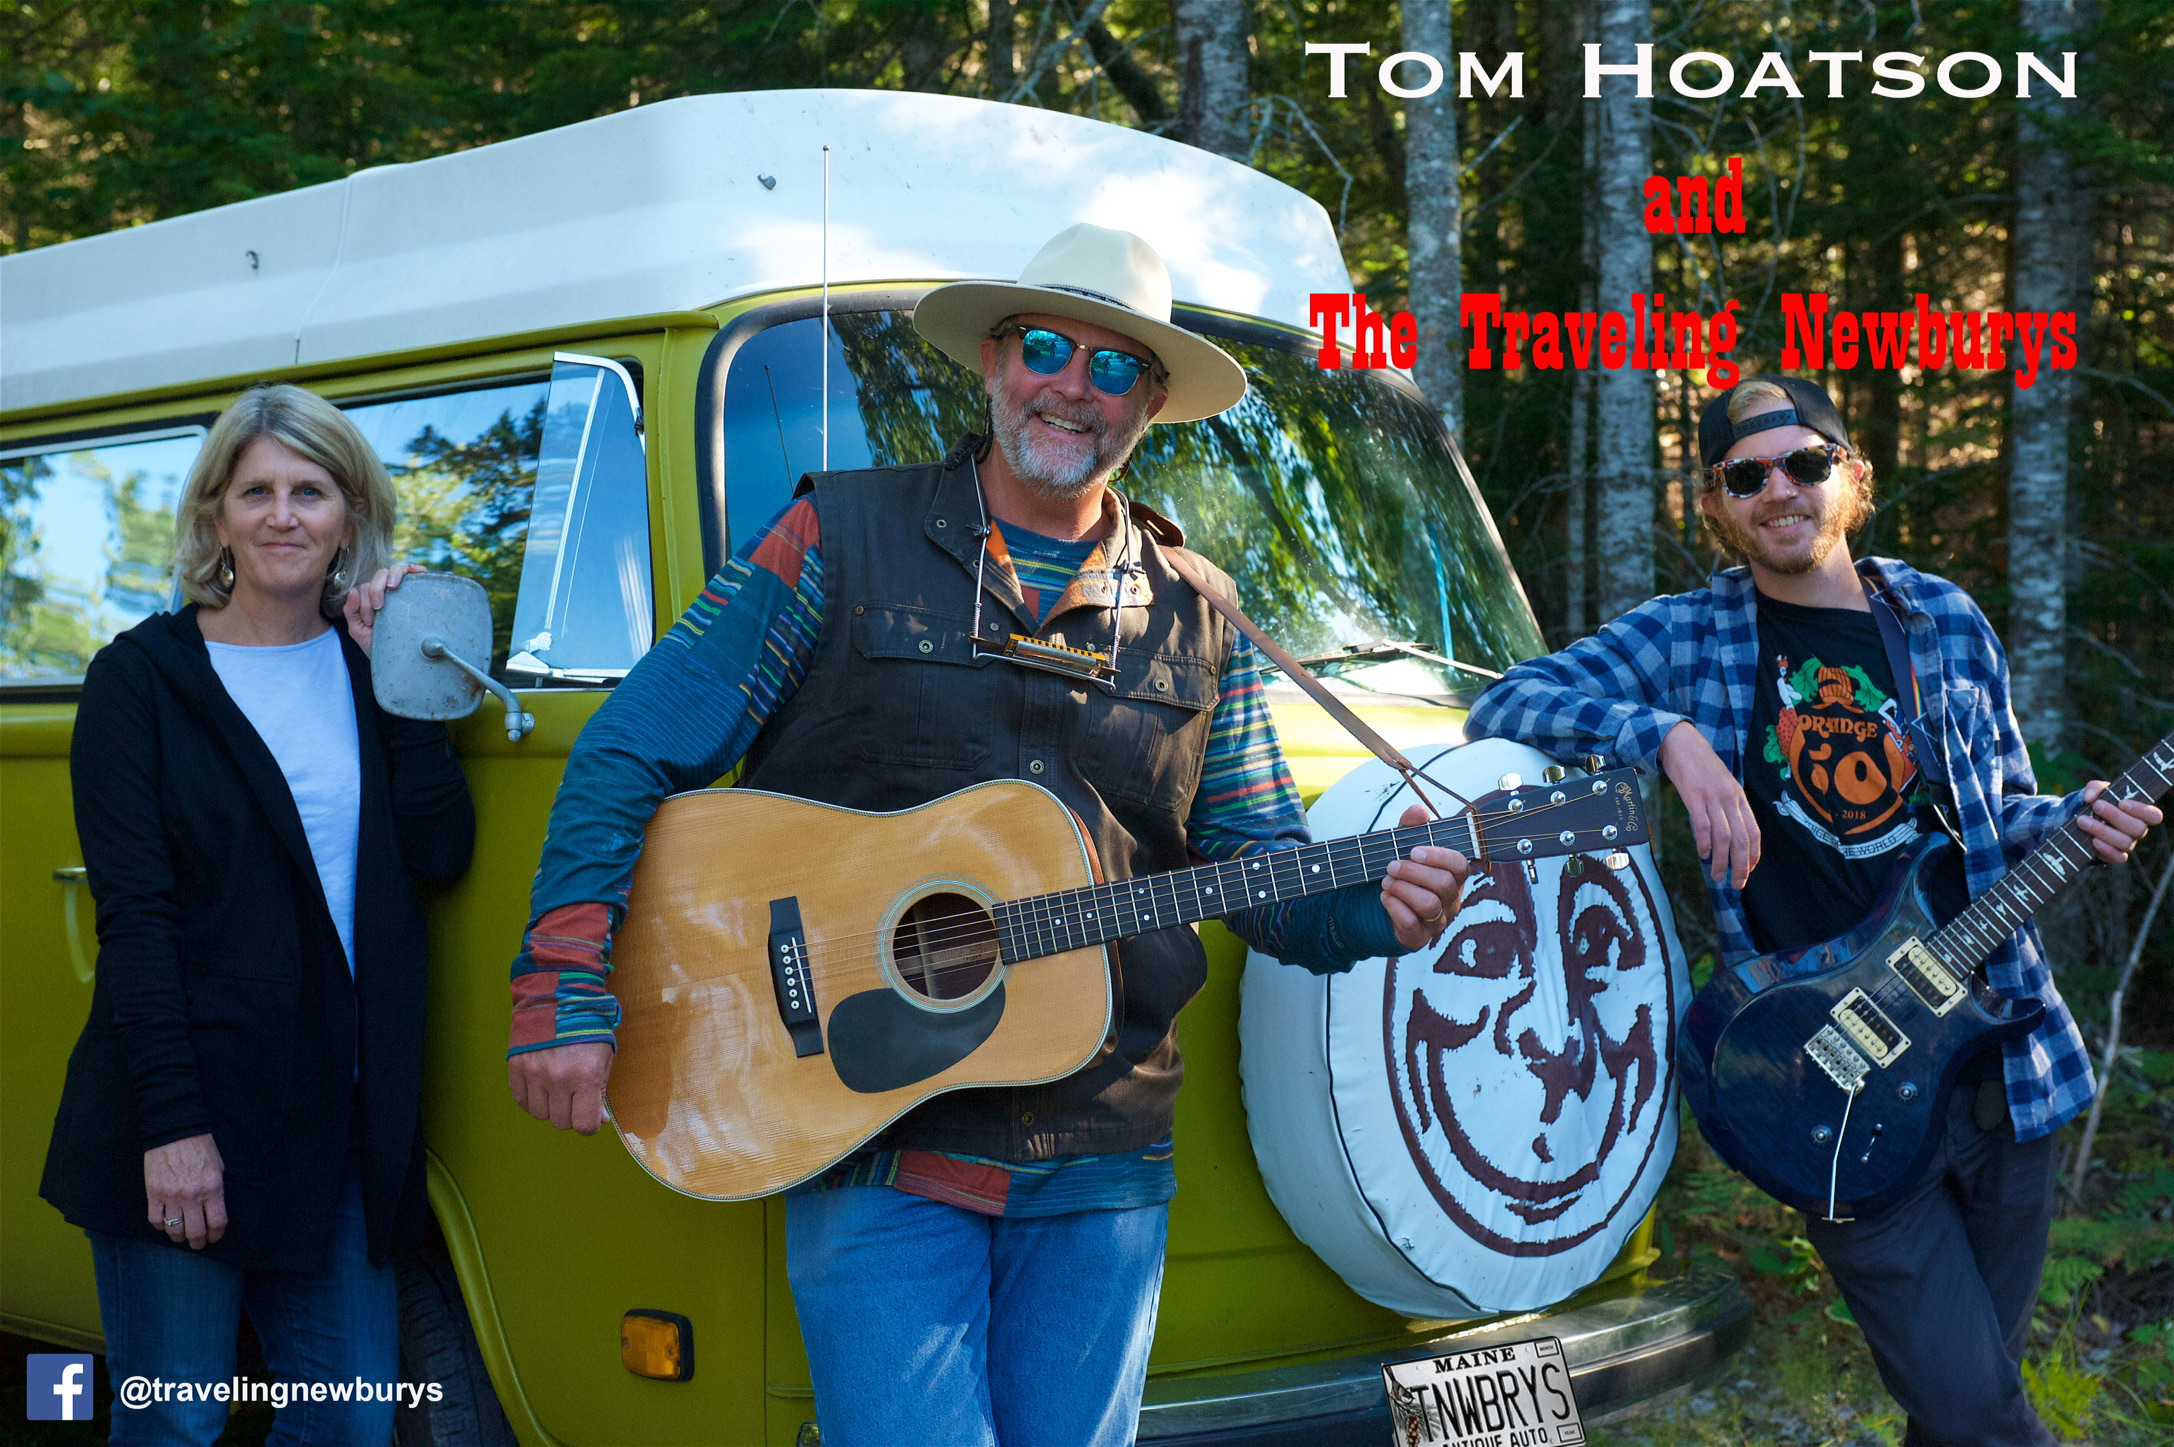 Music by - Tom Hoatson and the Traveling Newburys